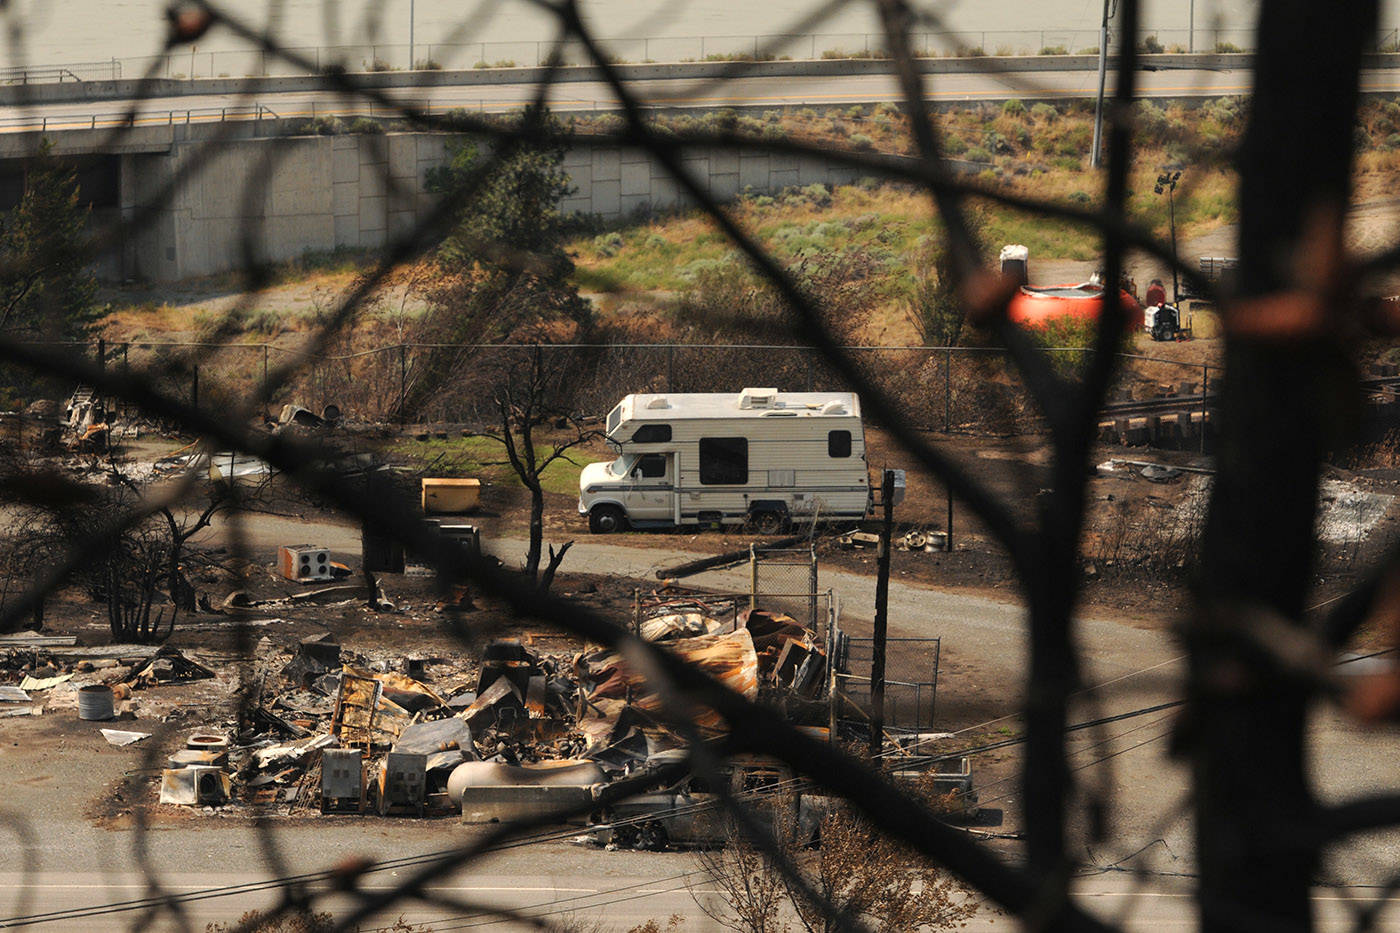 A motorhome sits amid the burnt debris in the Village of Lytton, B.C. on Friday, July 9, 2021 following a massive wildfire that tore through the town destroying 90 per cent of it. (Jenna Hauck/ Black Press Media)